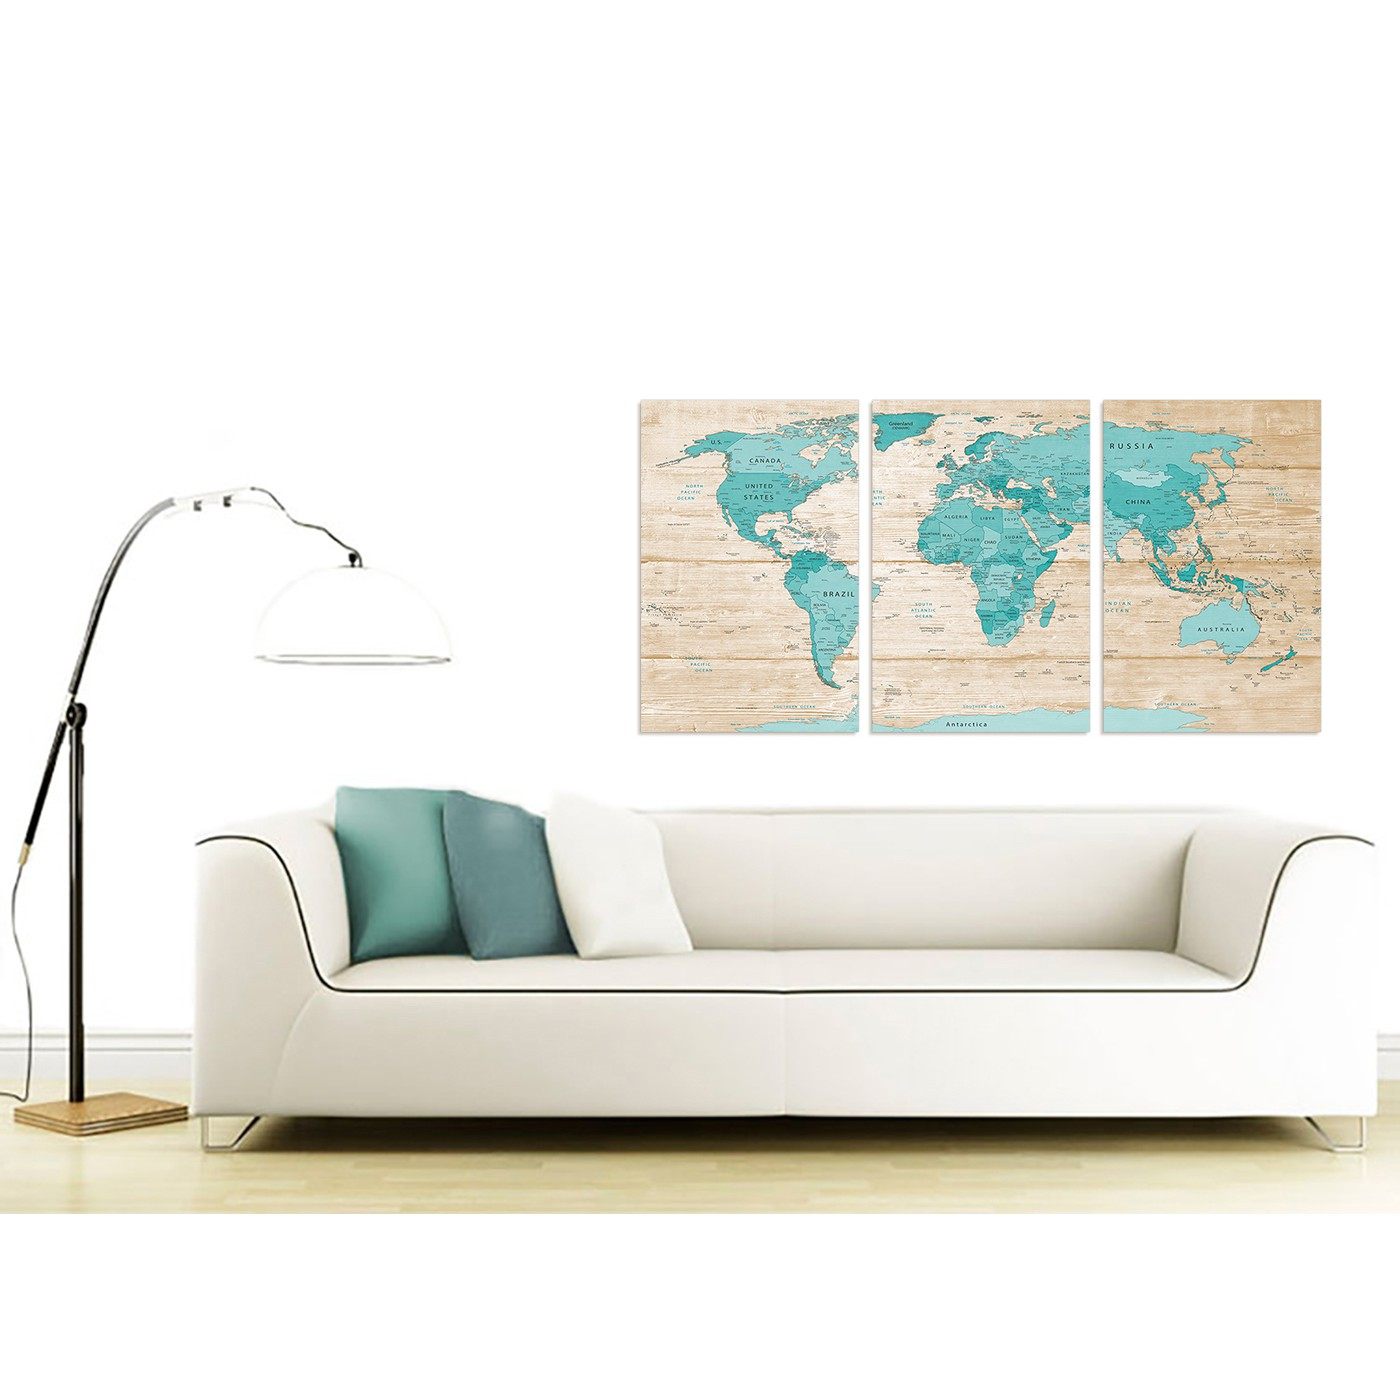 Display gallery item 3 contemporary large teal cream map of world atlas canvas split 3 set 3313 for your dining display gallery item 4